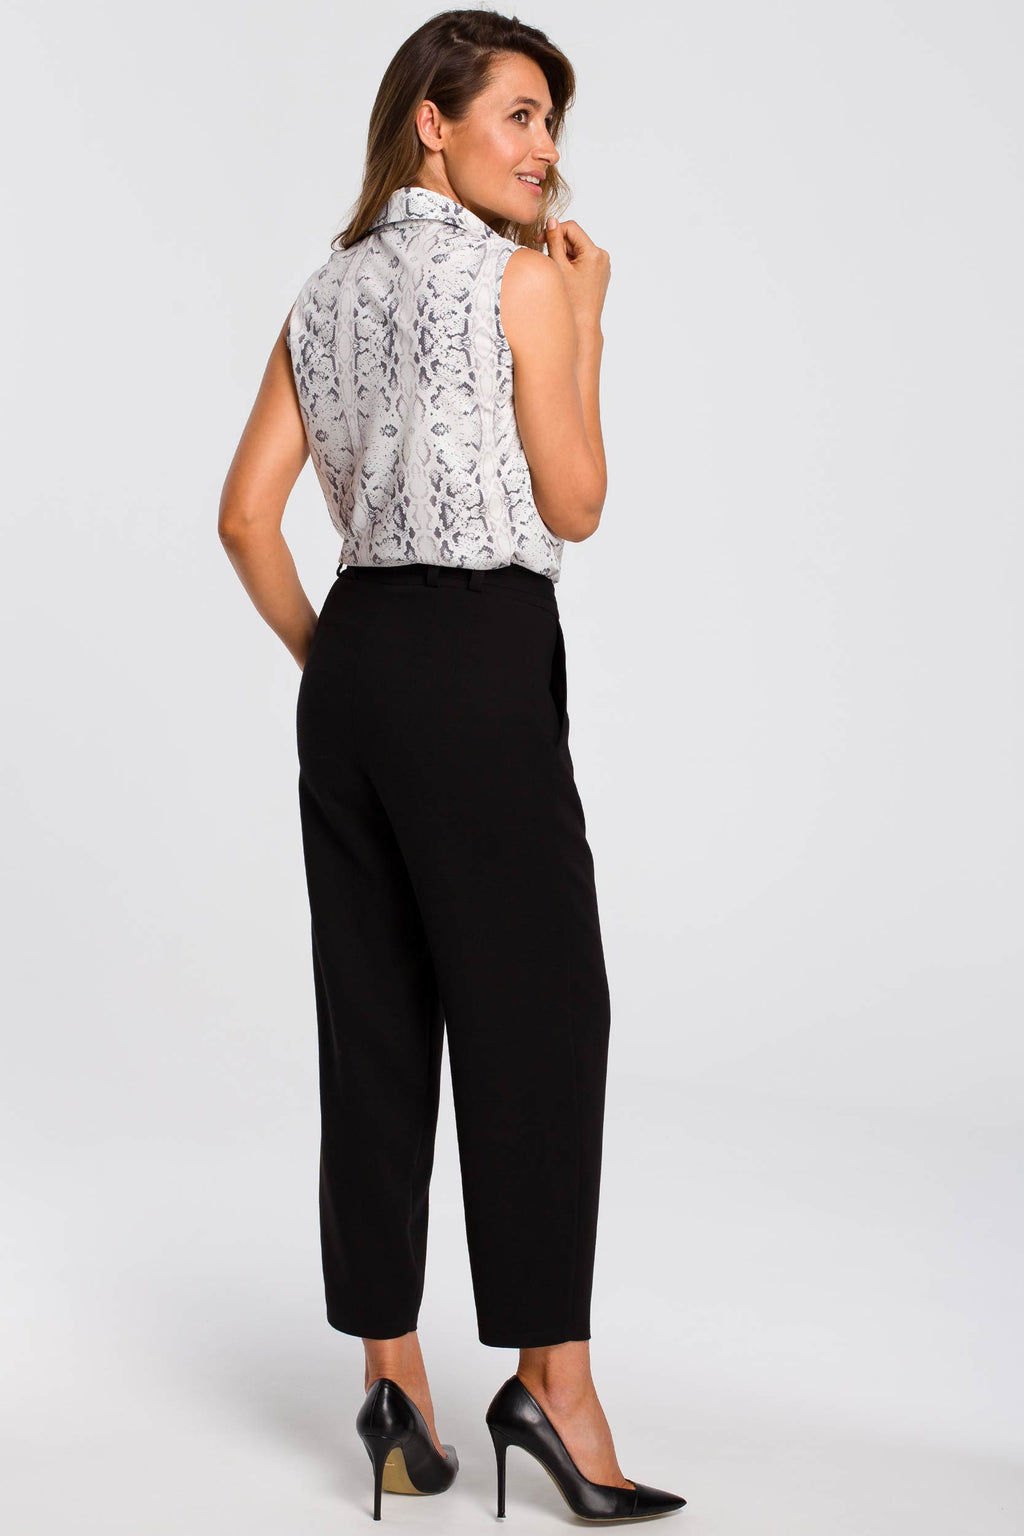 Black Pegged Trousers With A Buckle Belt - So Chic Boutique